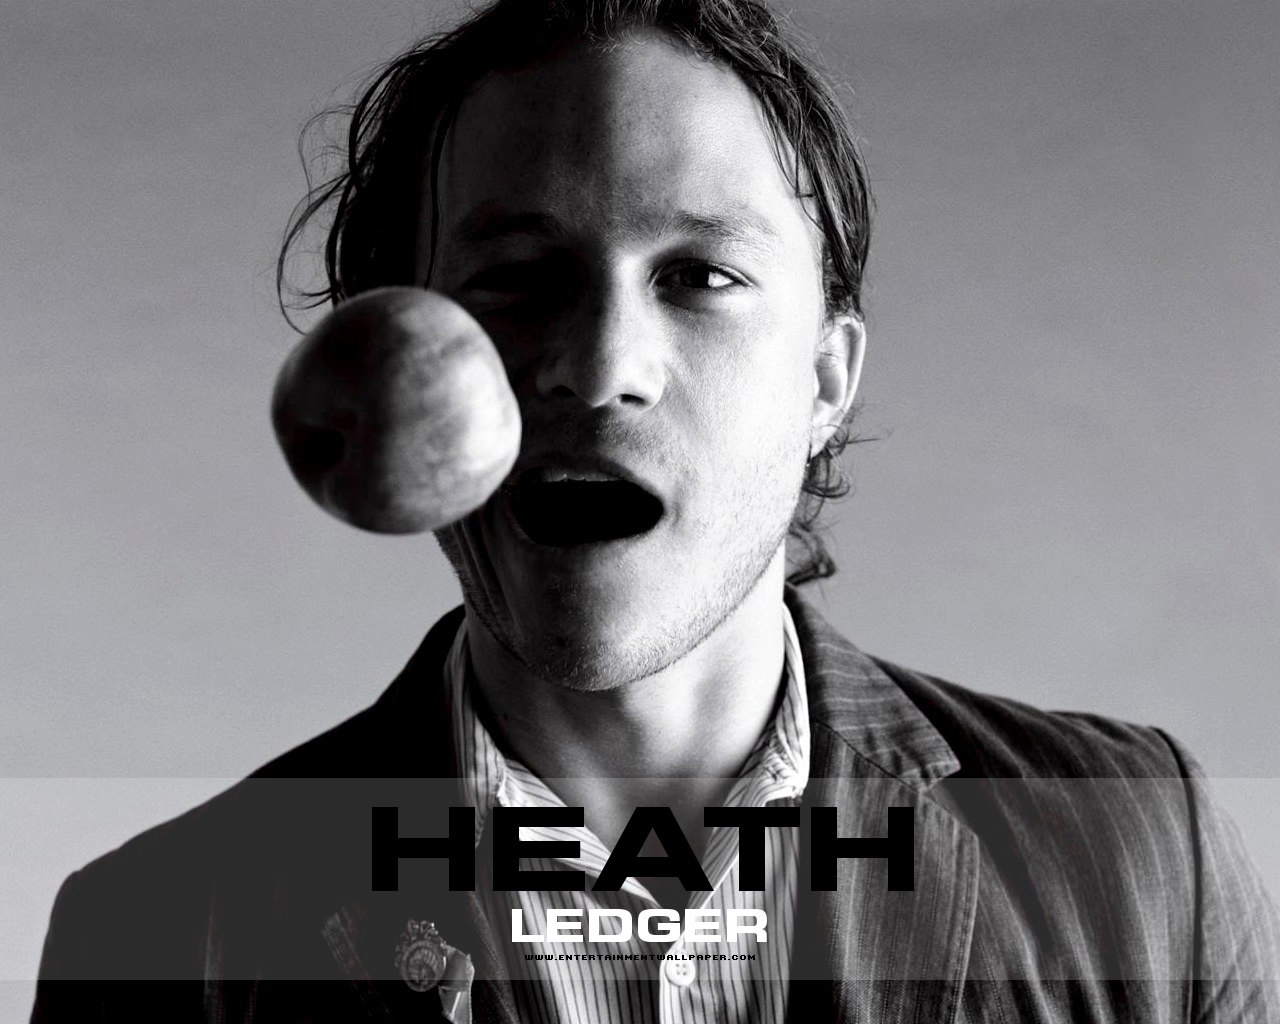 Heath Ledger Wallpaper - Original size, download now.